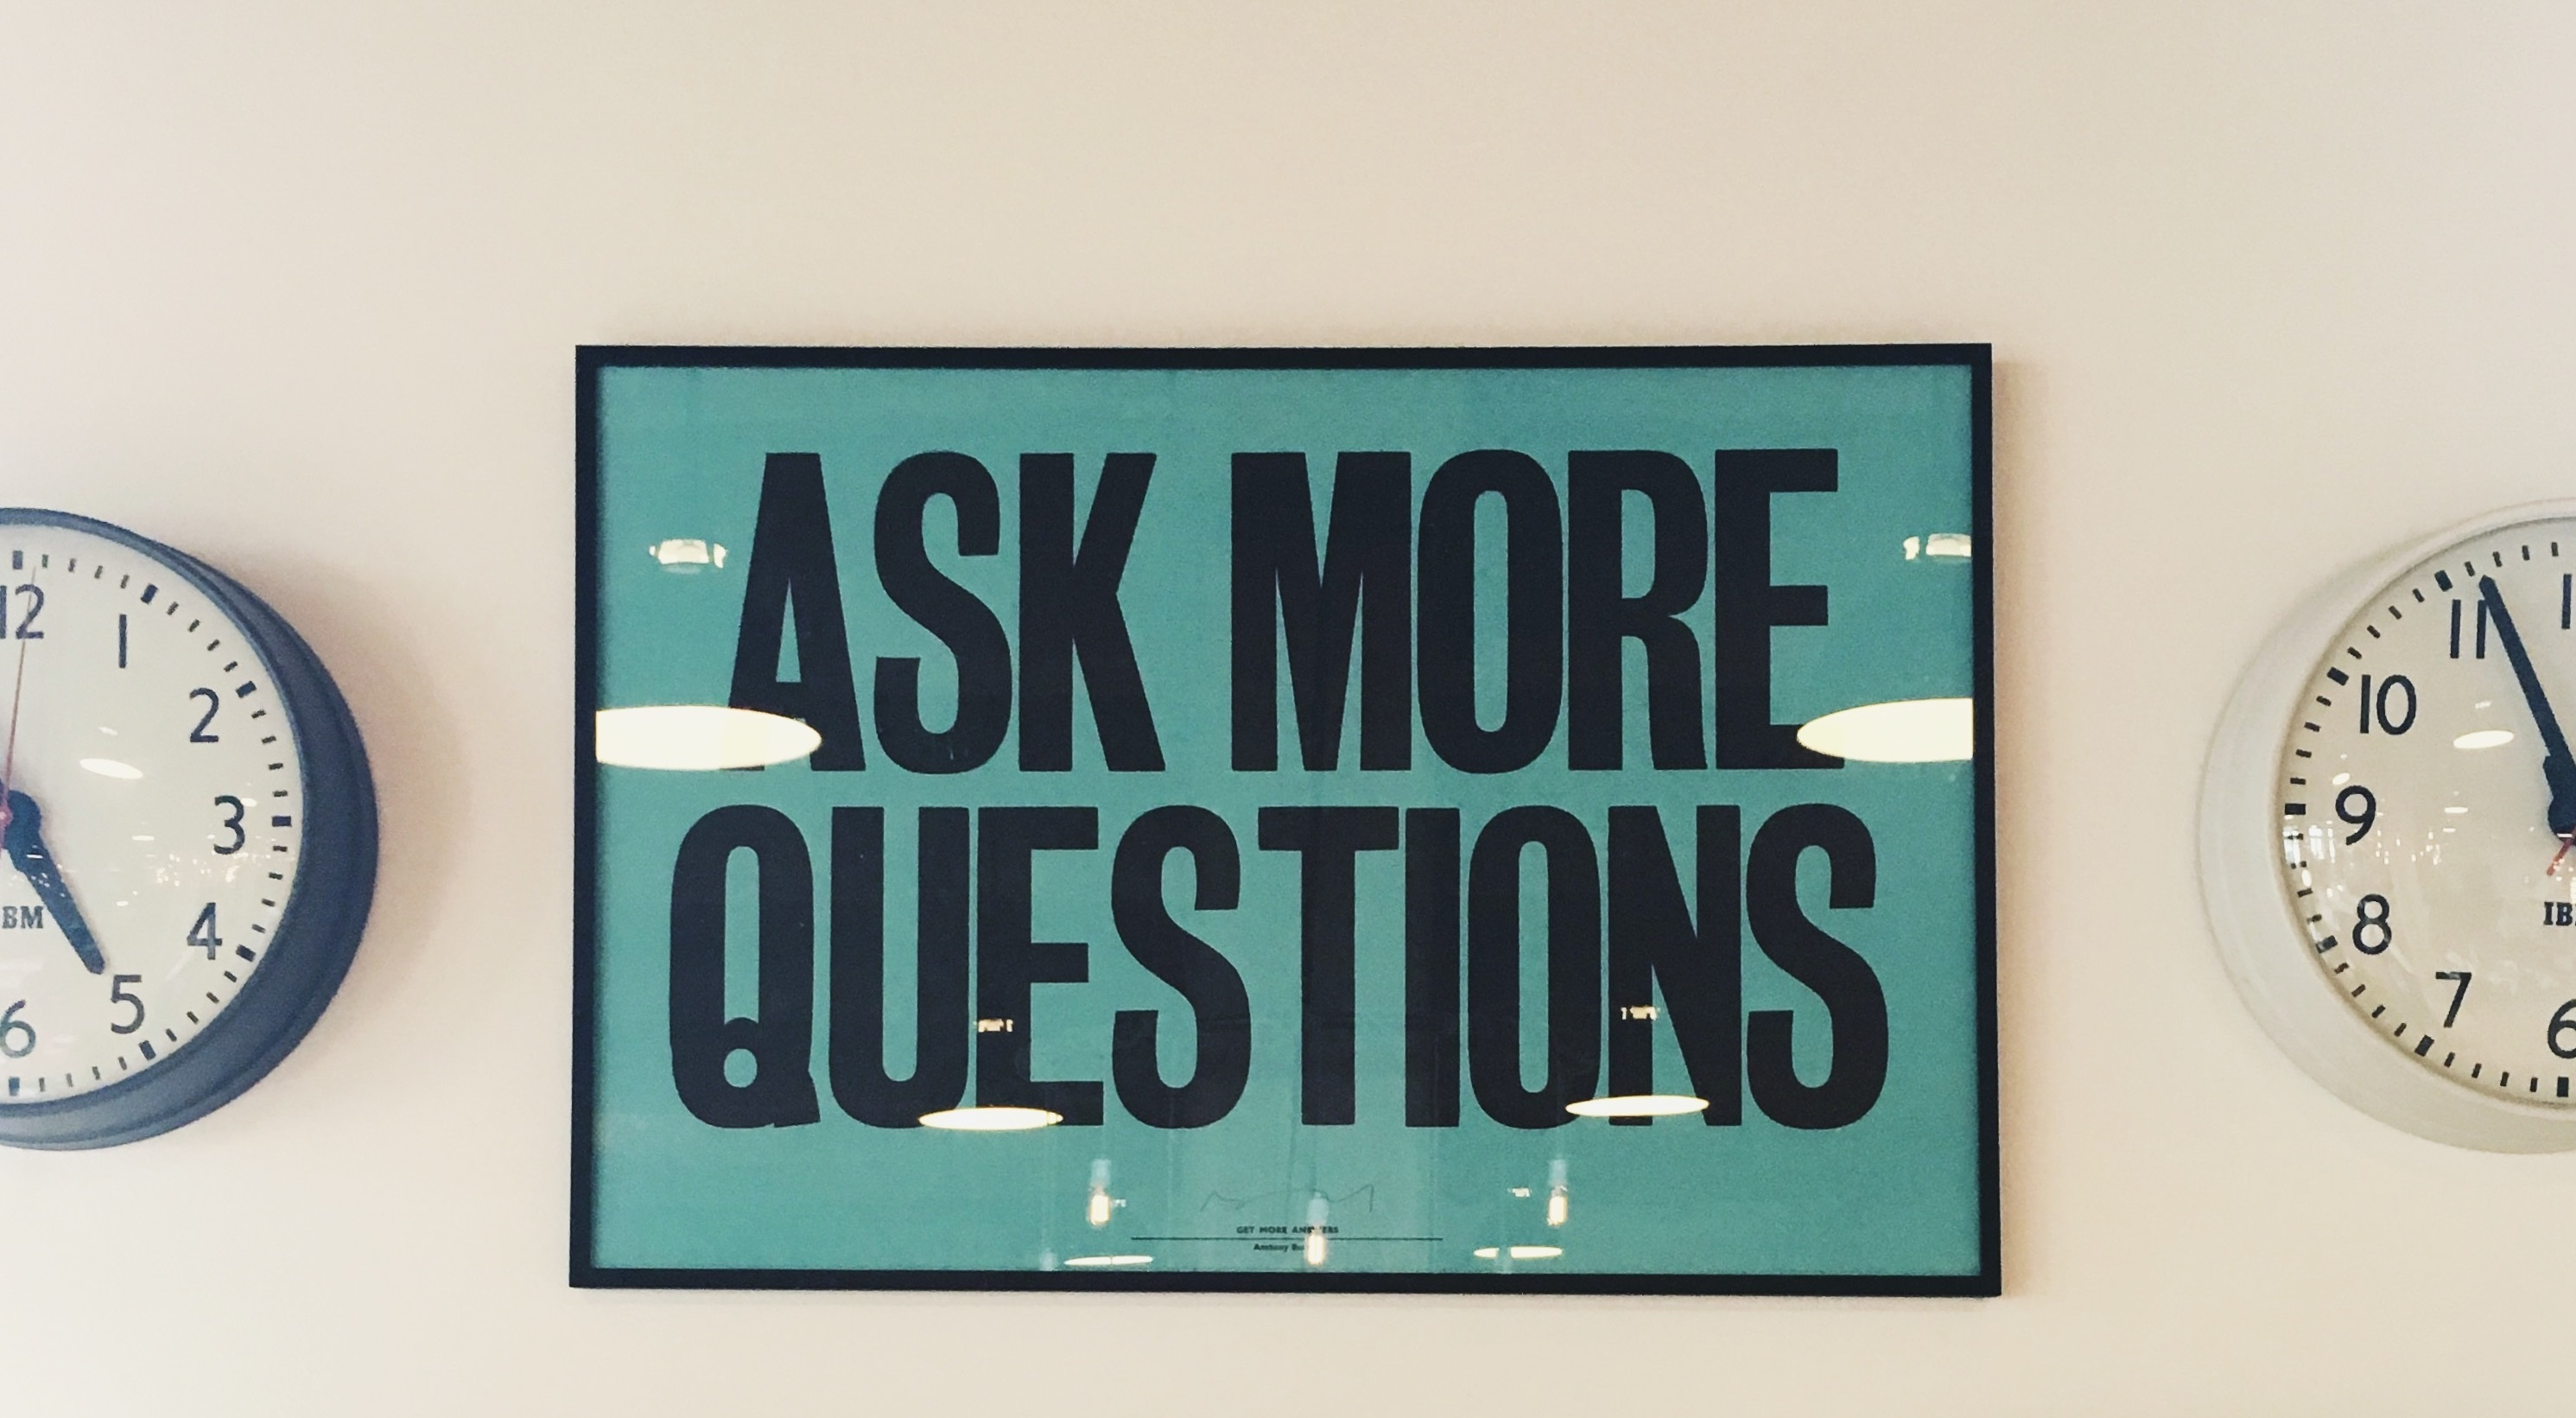 Ask more questions poster on wall